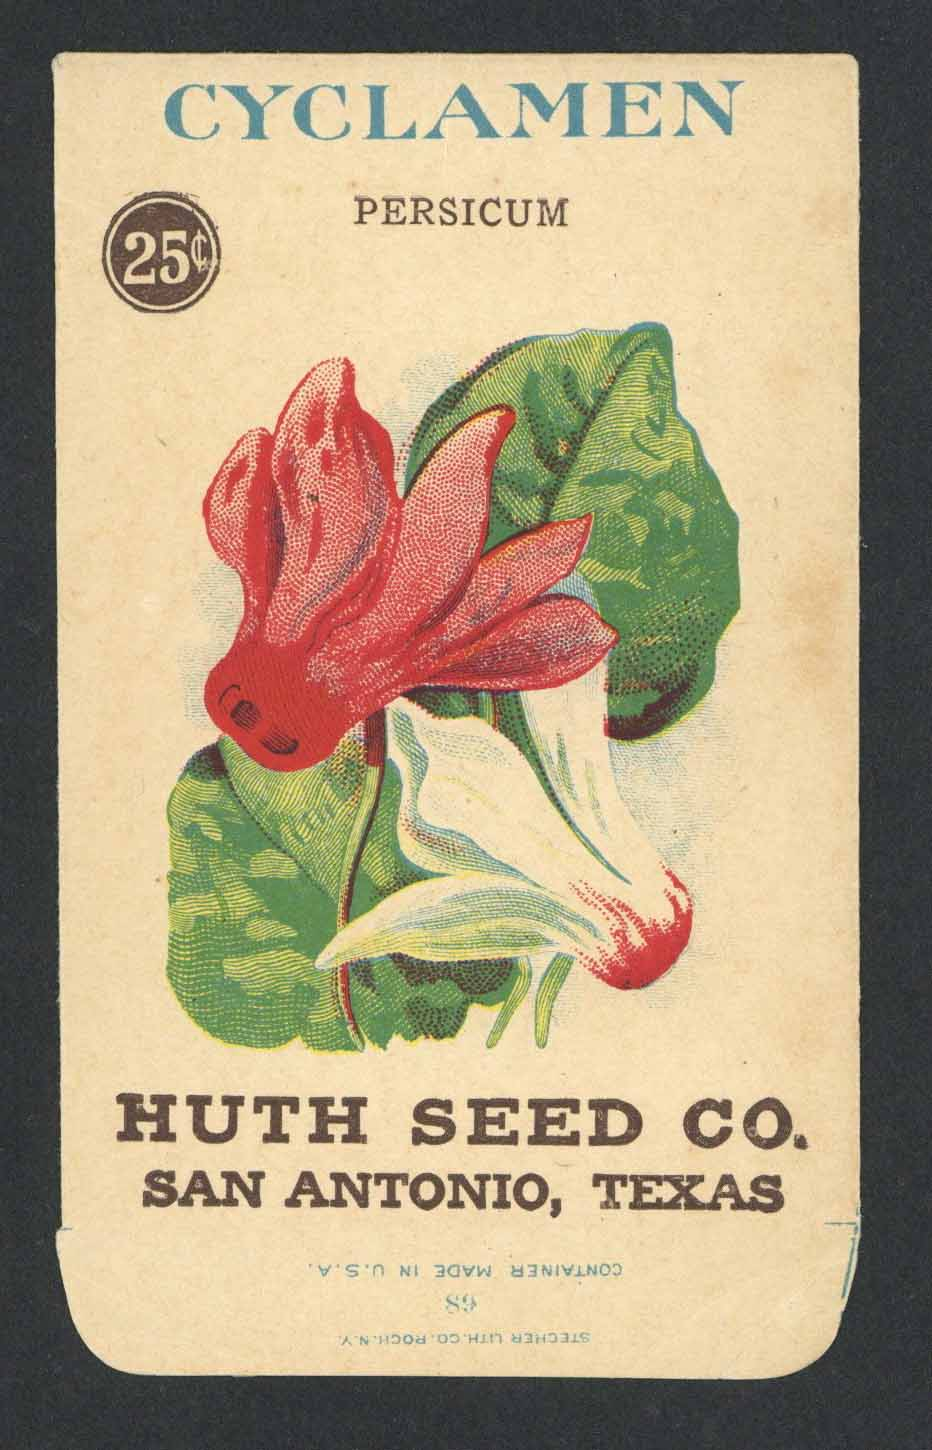 Cyclamen Antique Huth Seed Co. Packet